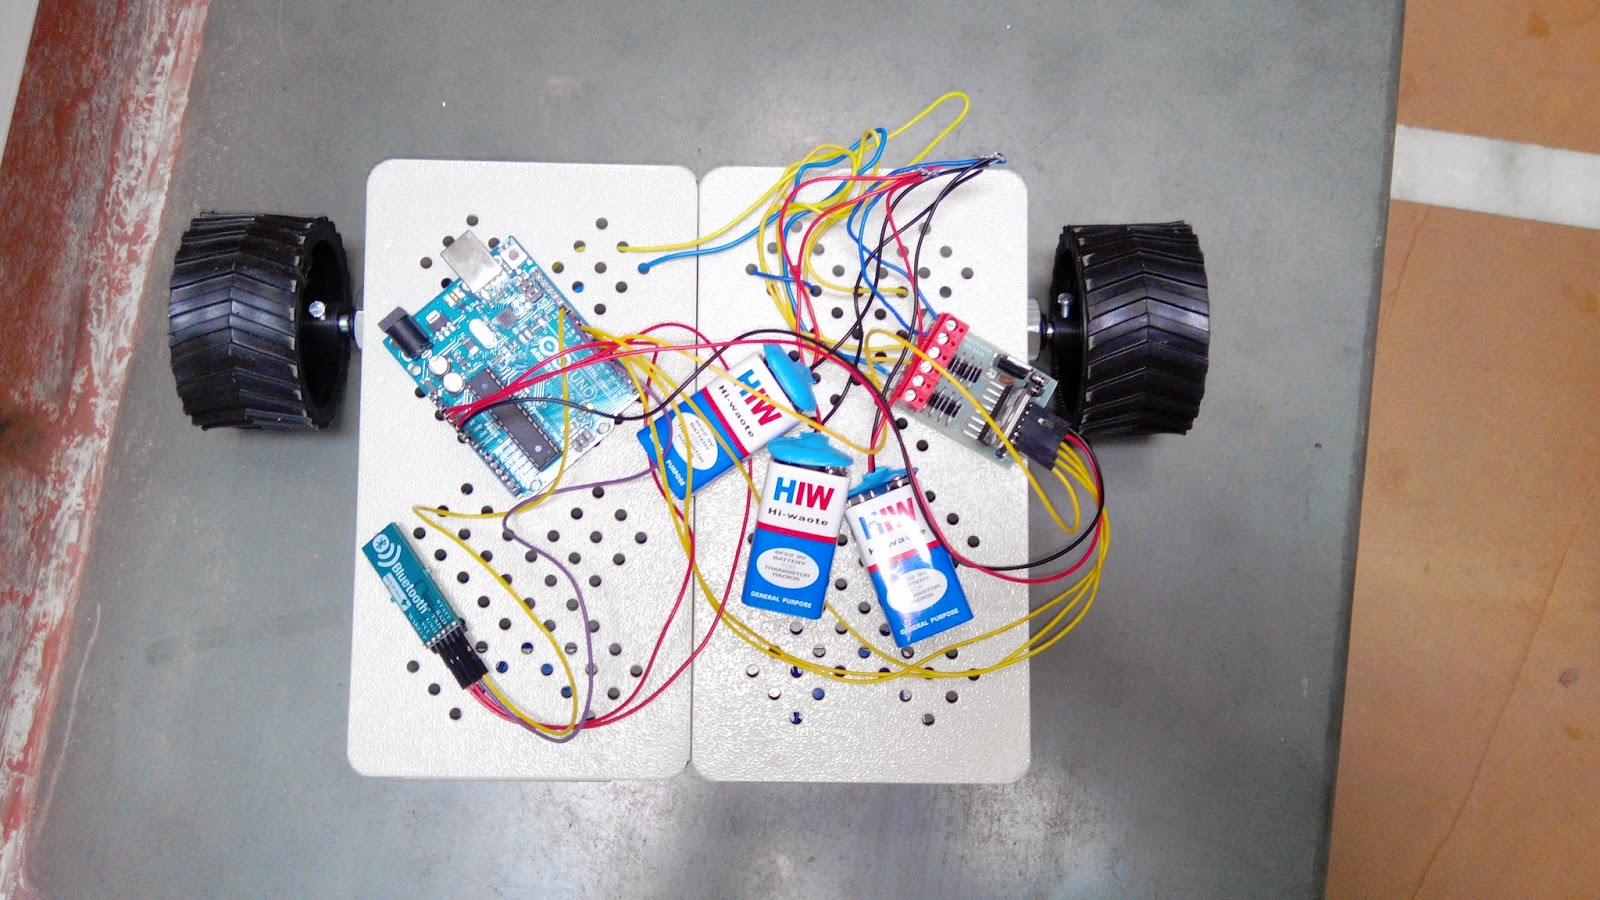 Insect Robot Iedprojects2015iiitd Rgb Led Controller Schematic Pyroelectro News Projects The Robotic Arm Parts Are Made By 3 D Printer